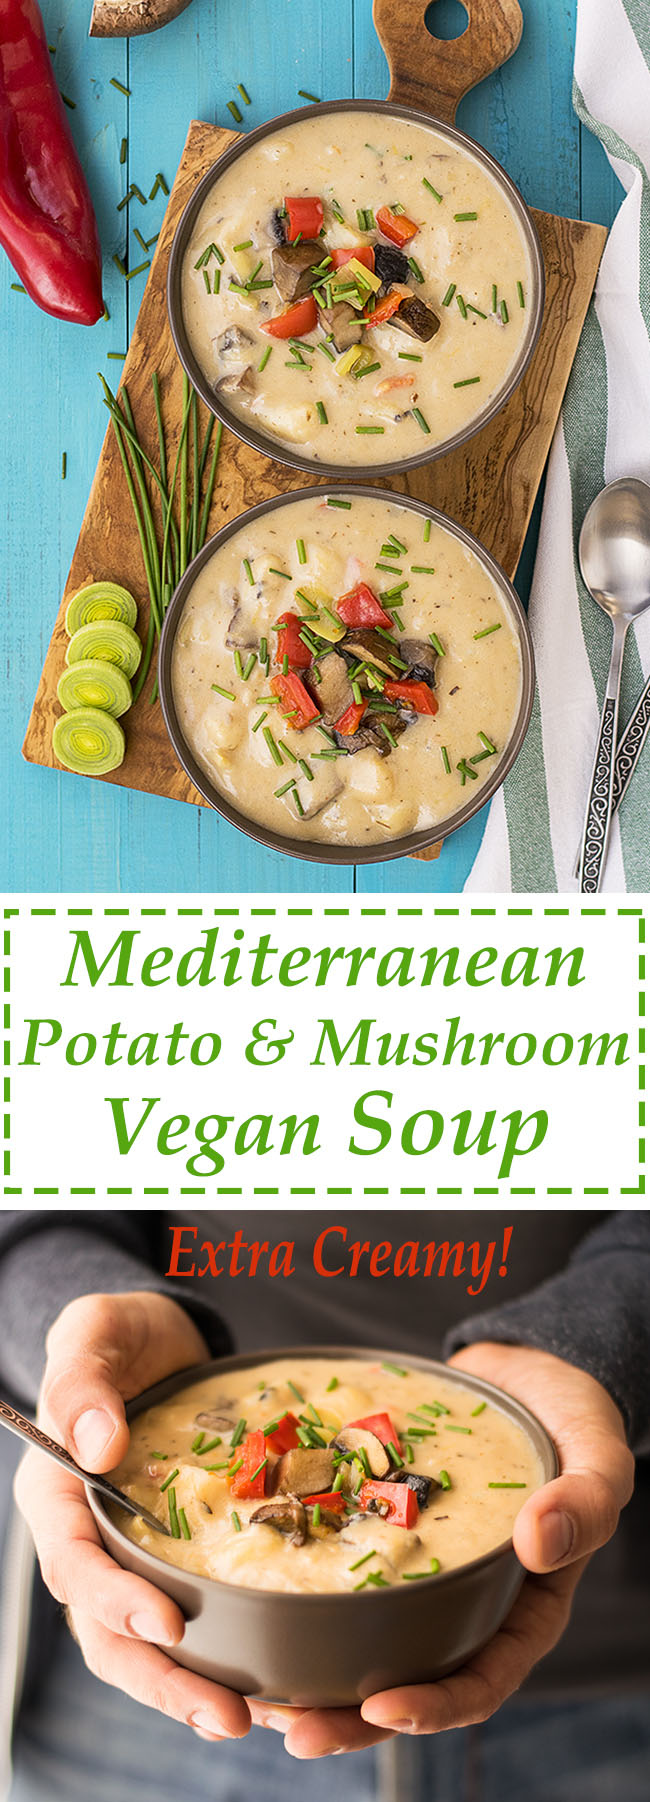 Mediterranean creamy potato and mushroom soup (Vegan) 6